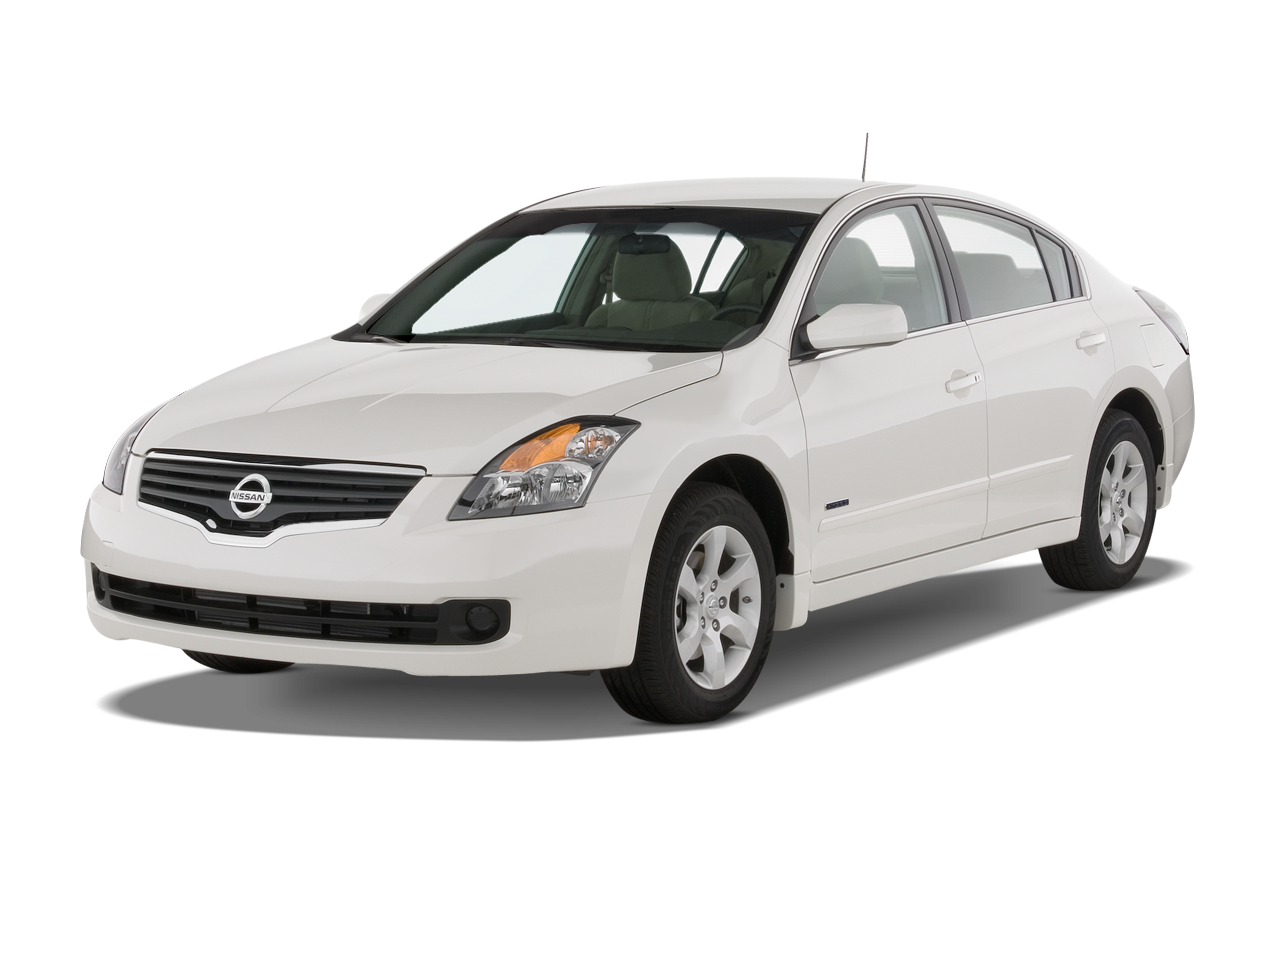 91 Best Review 2007 Nissan Altima Ratings with 2007 Nissan Altima